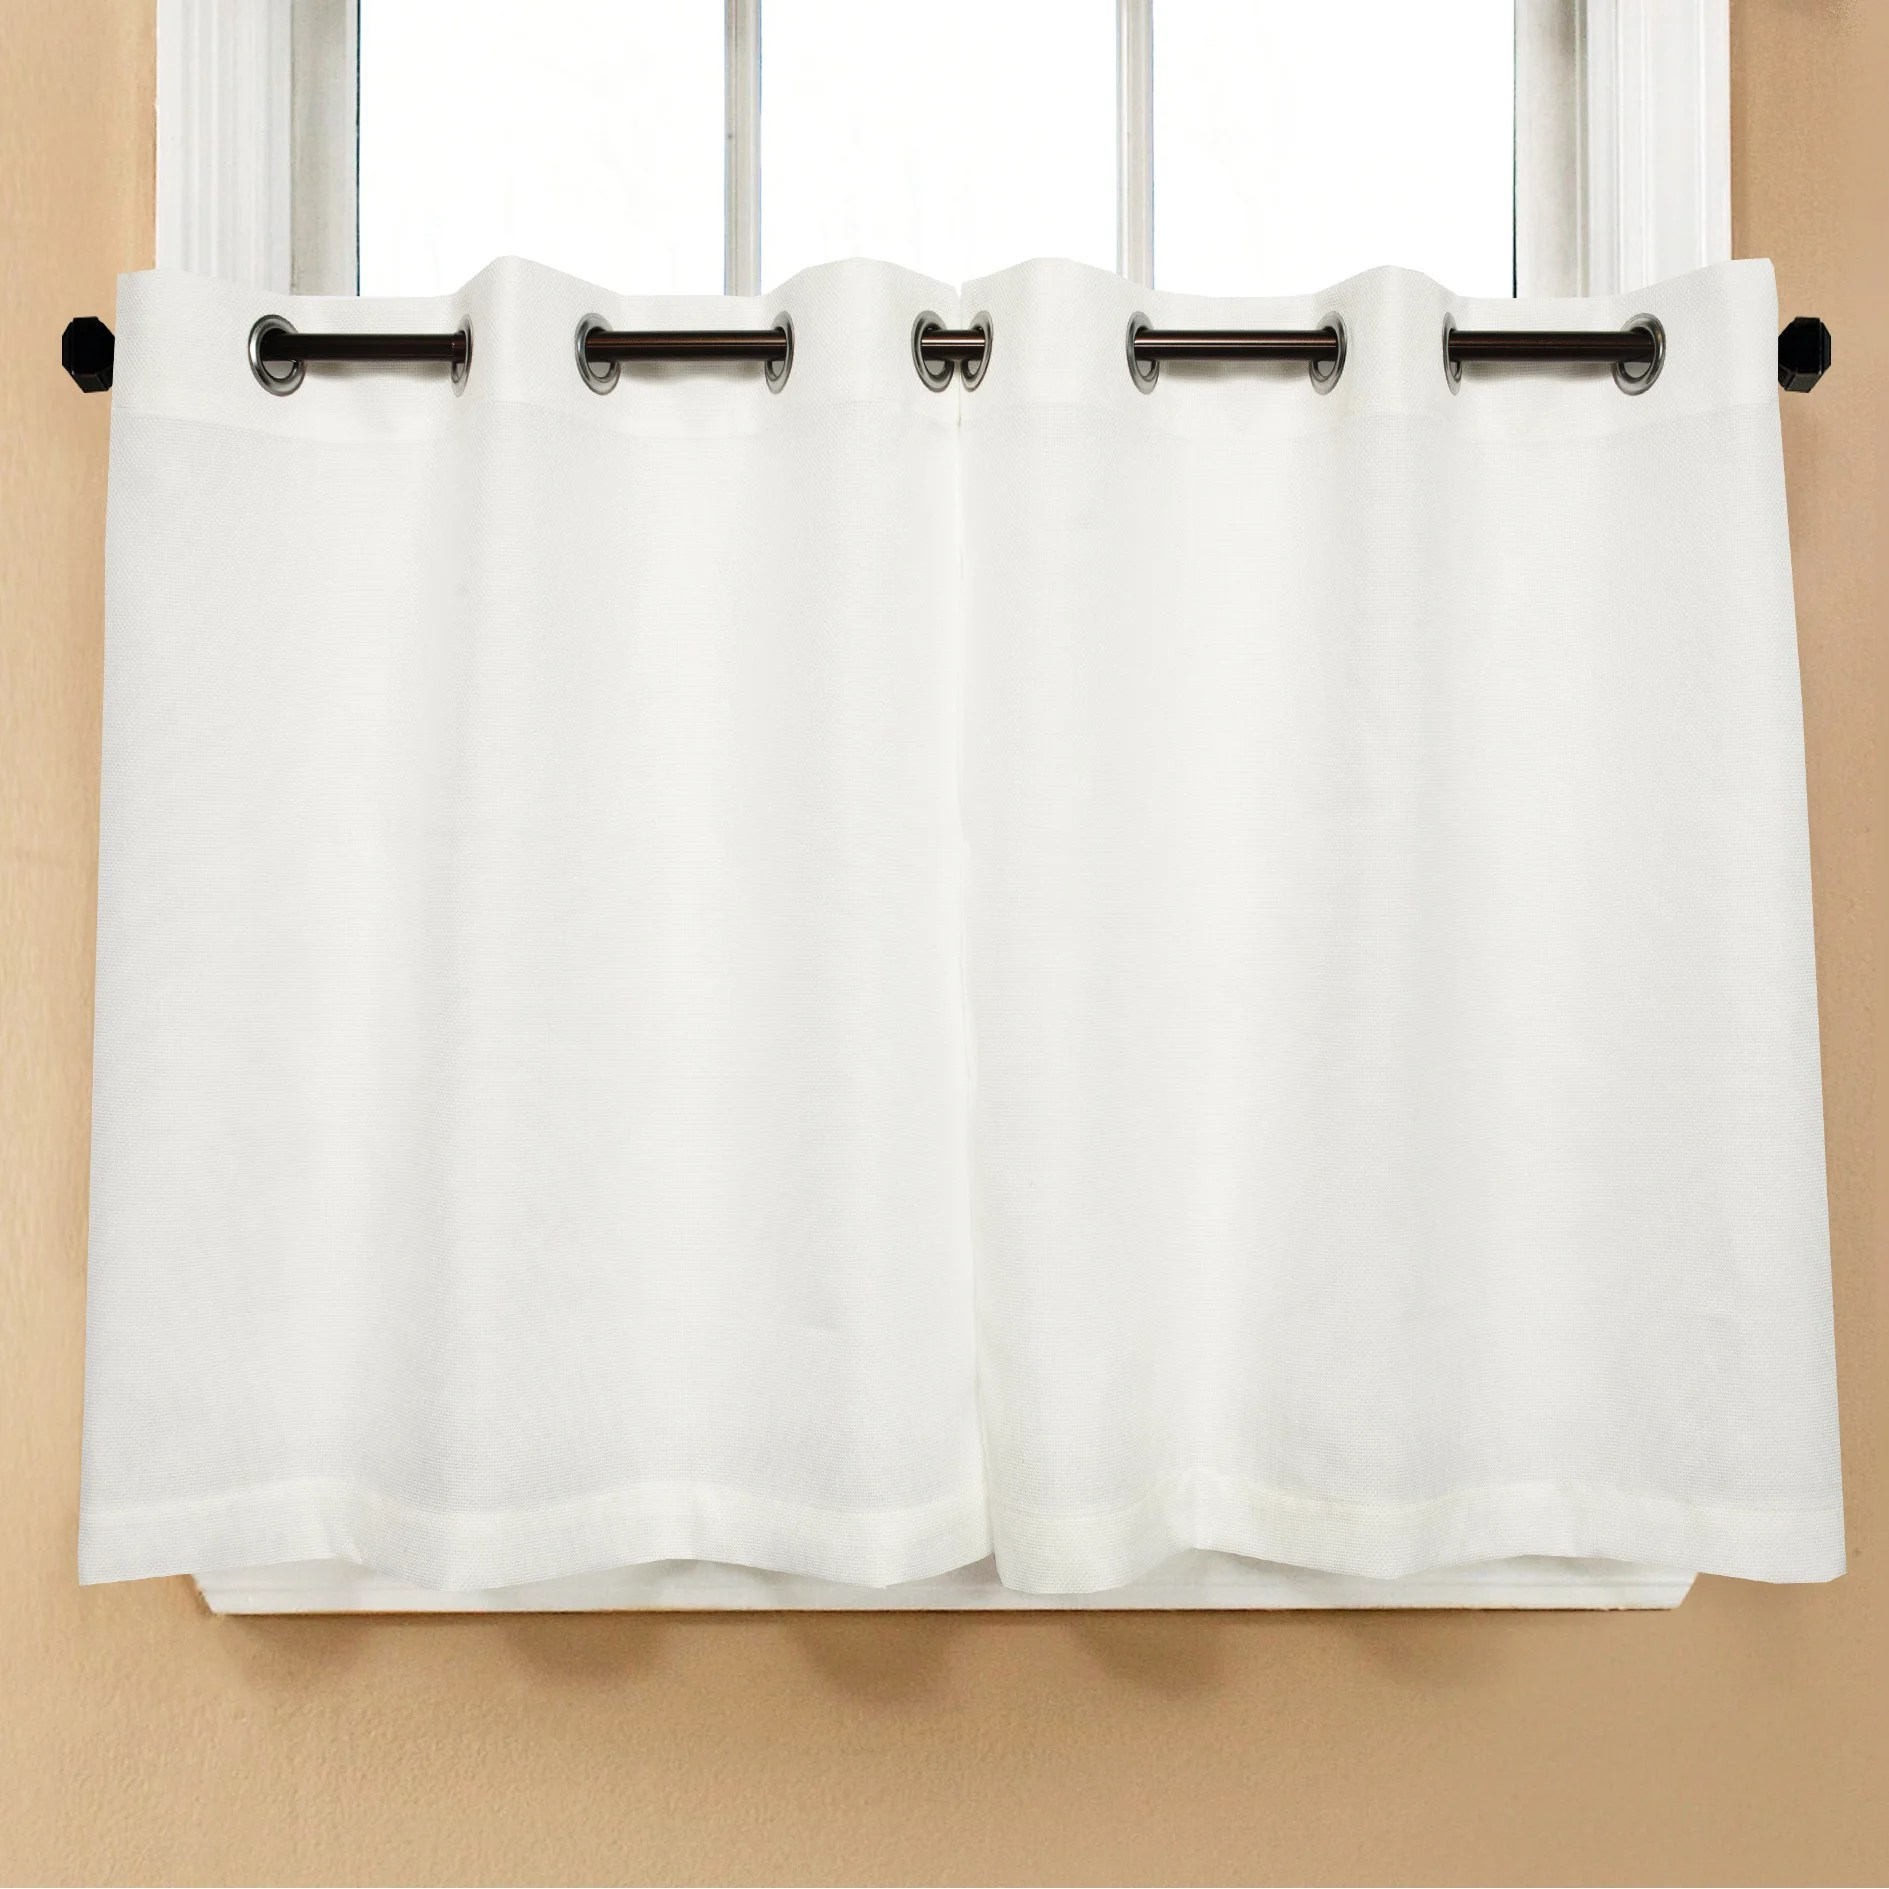 grommet kitchen curtains mobile islands for kitchens shop modern subtle texture solid white curtain parts with grommets tier and valance options